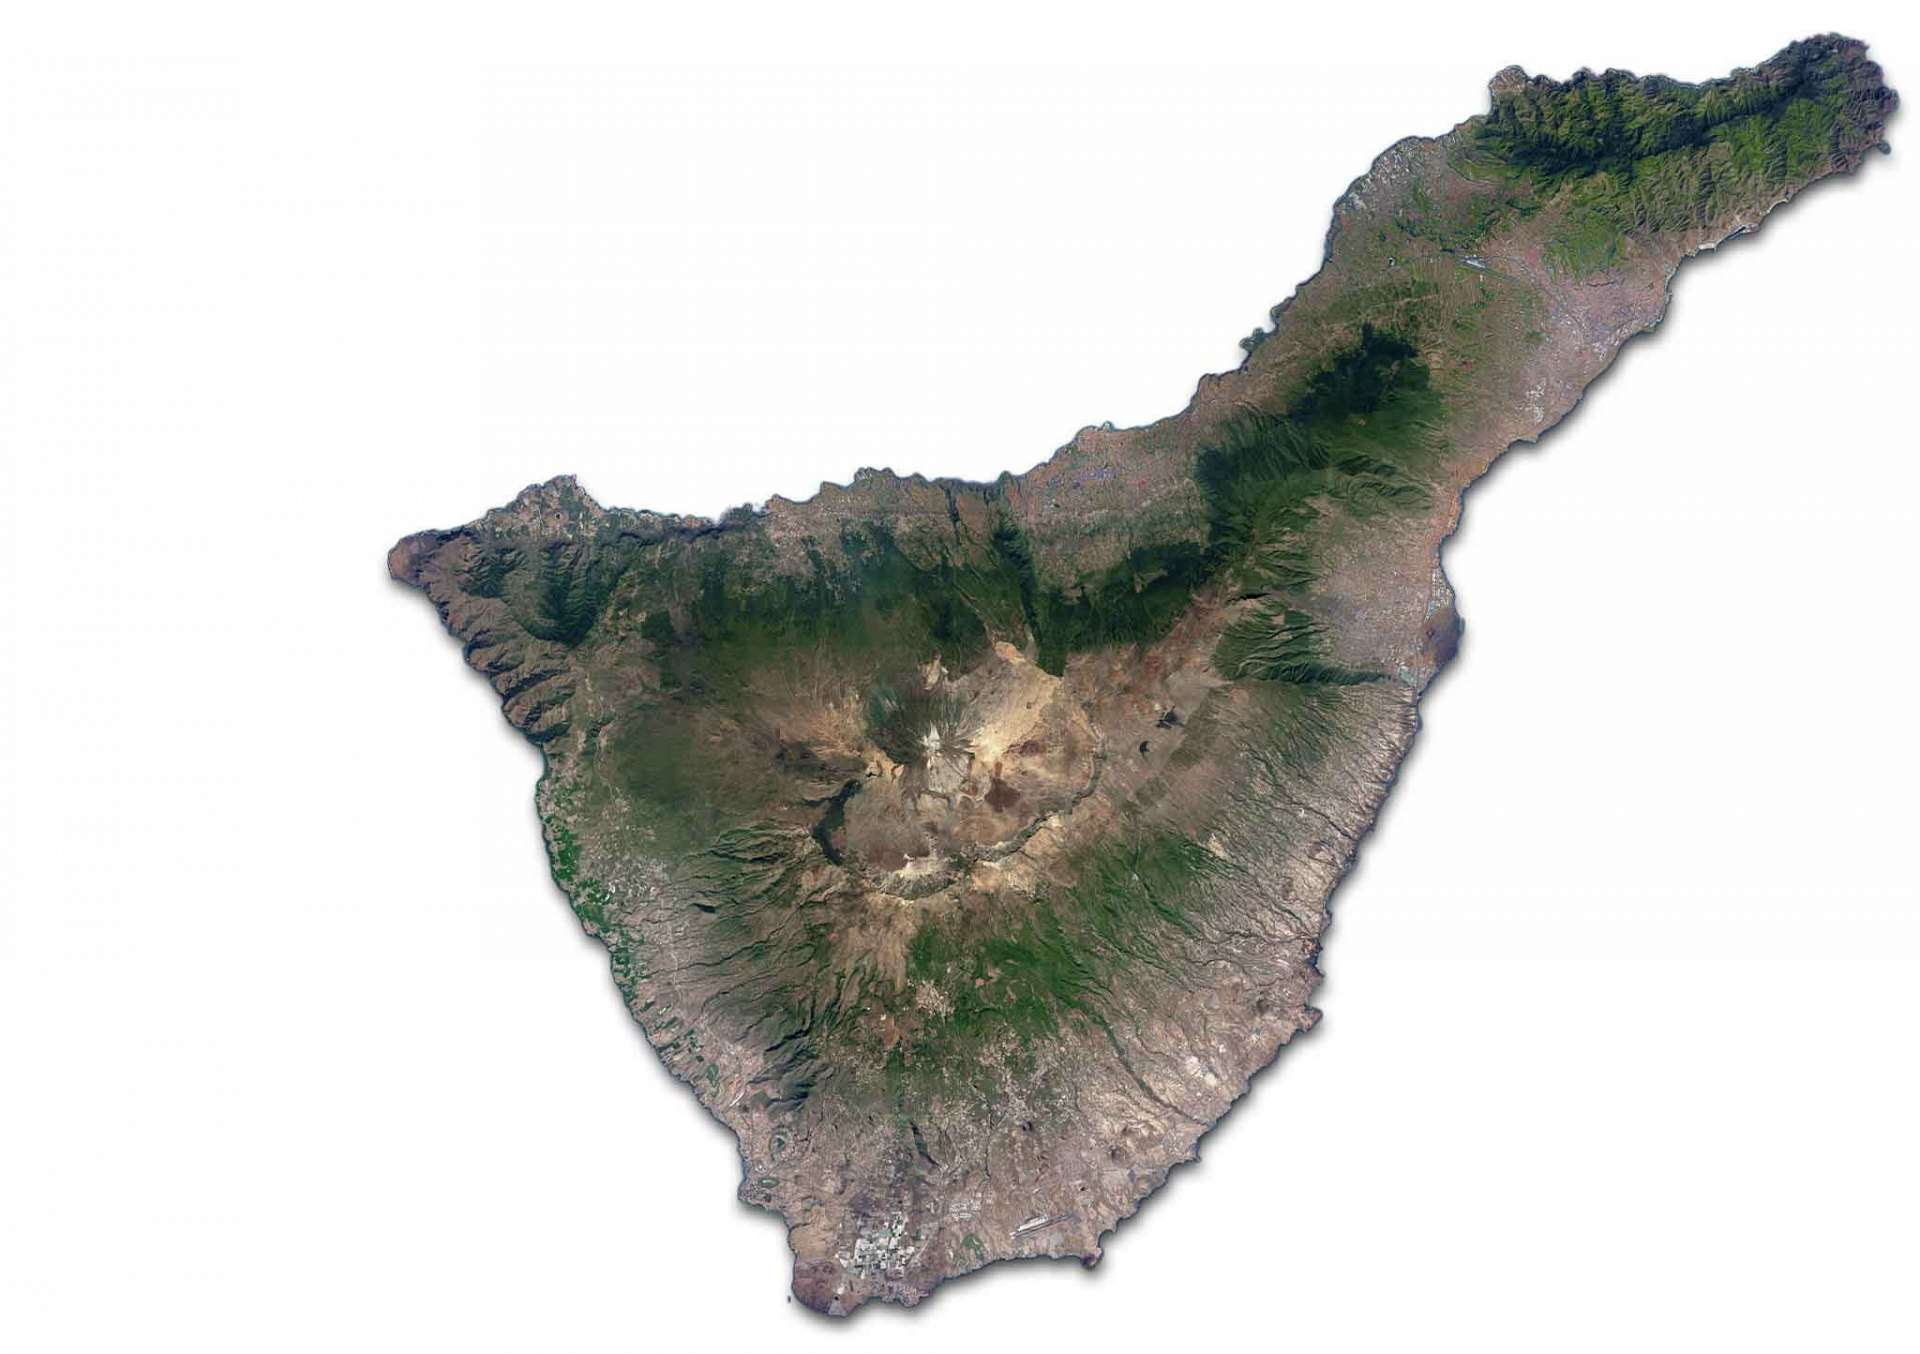 Tenerife: Plan your holidays with interactive map of Tenerife